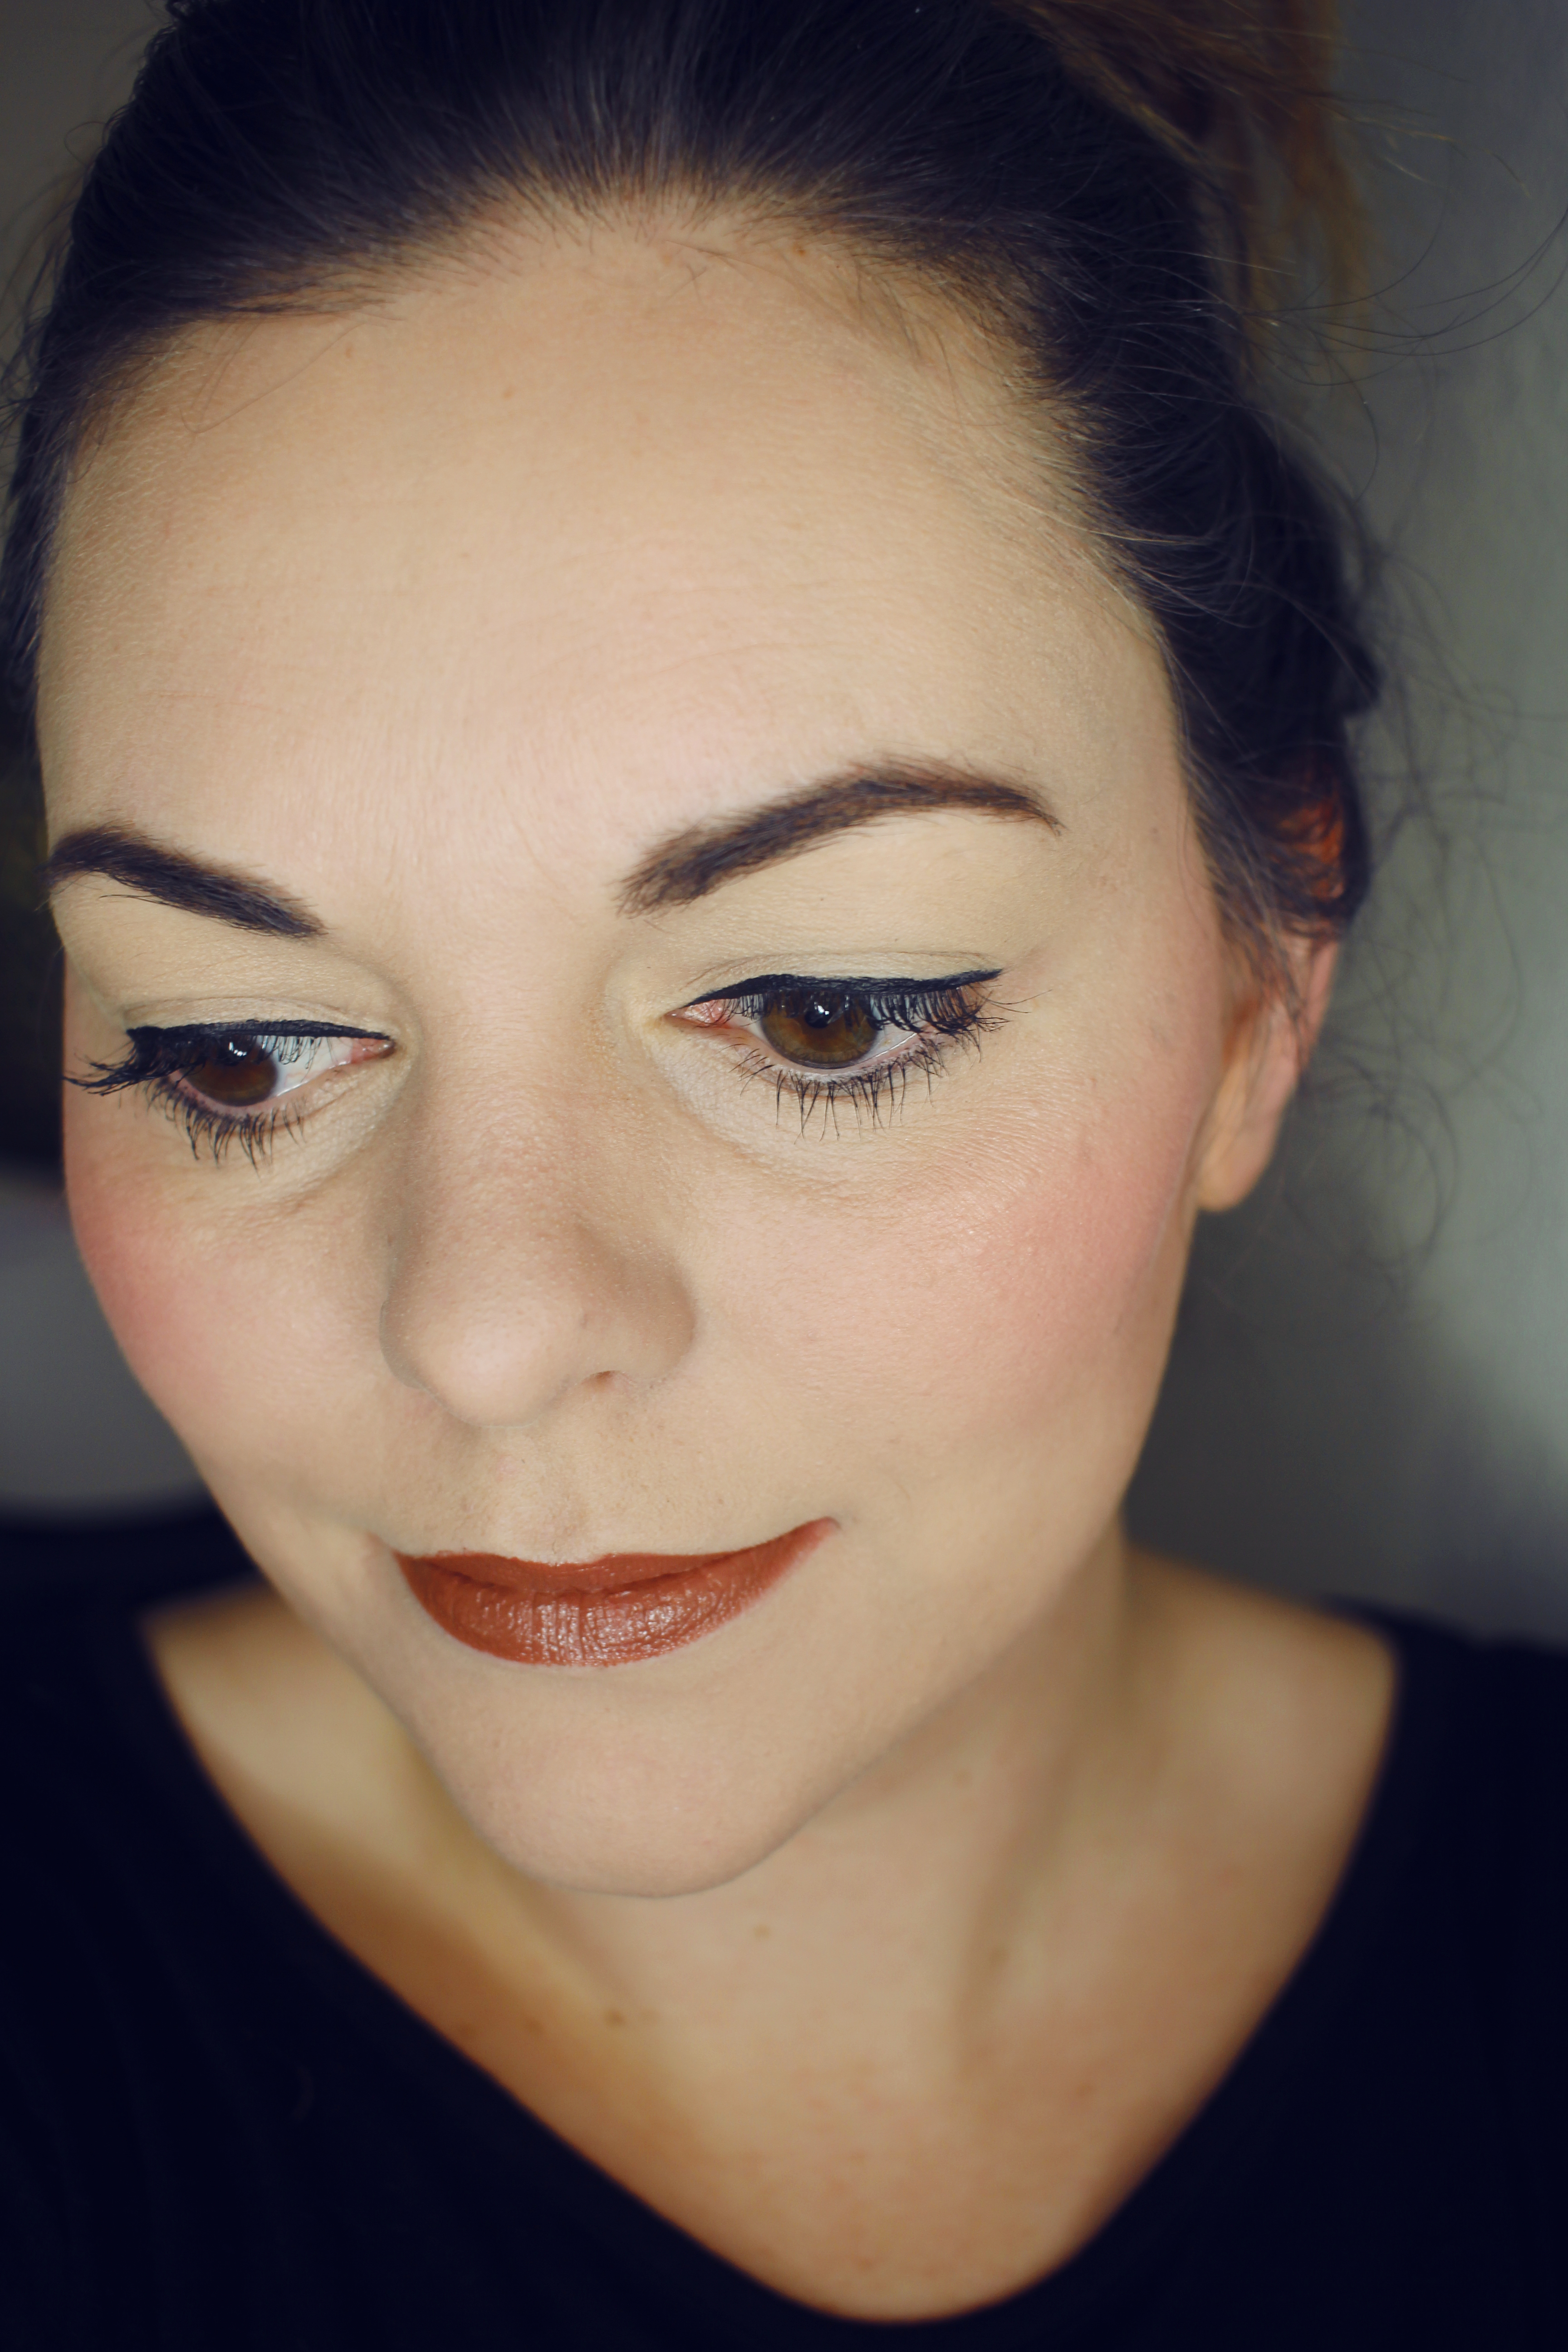 beautycounter precision eyeliner review, comparison of beautycounter to stila liquid liner